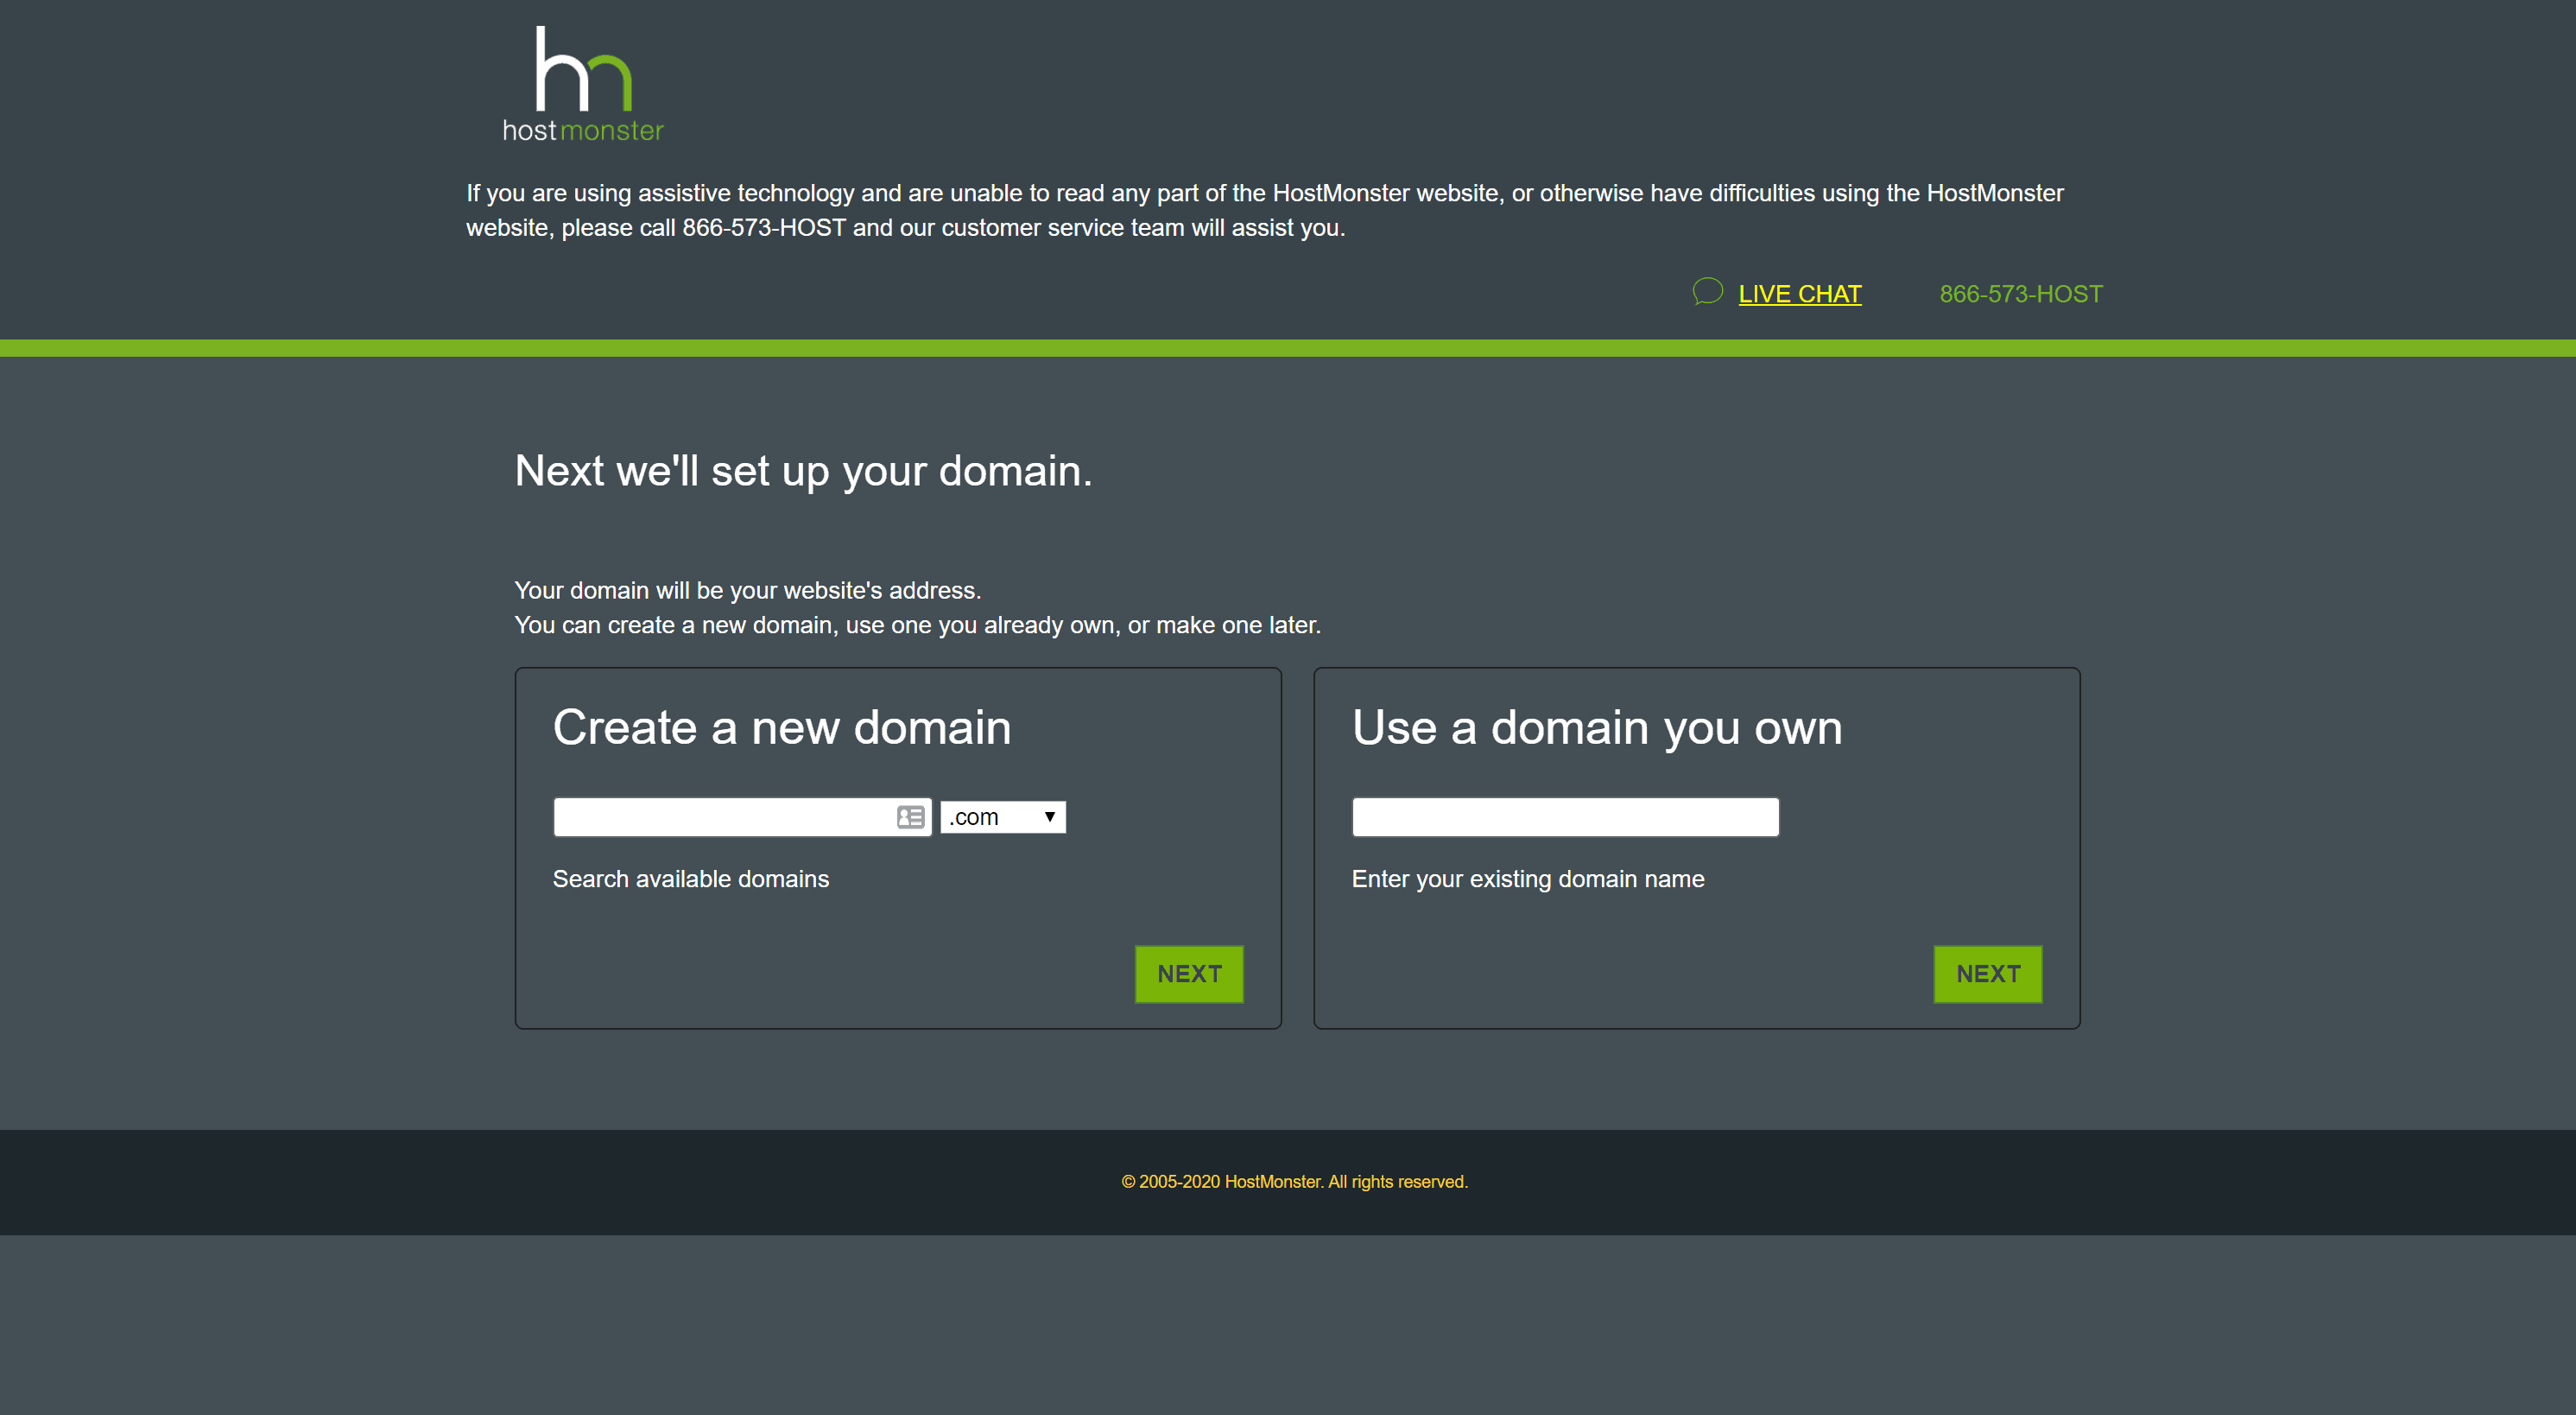 How to signup with Hostmonster